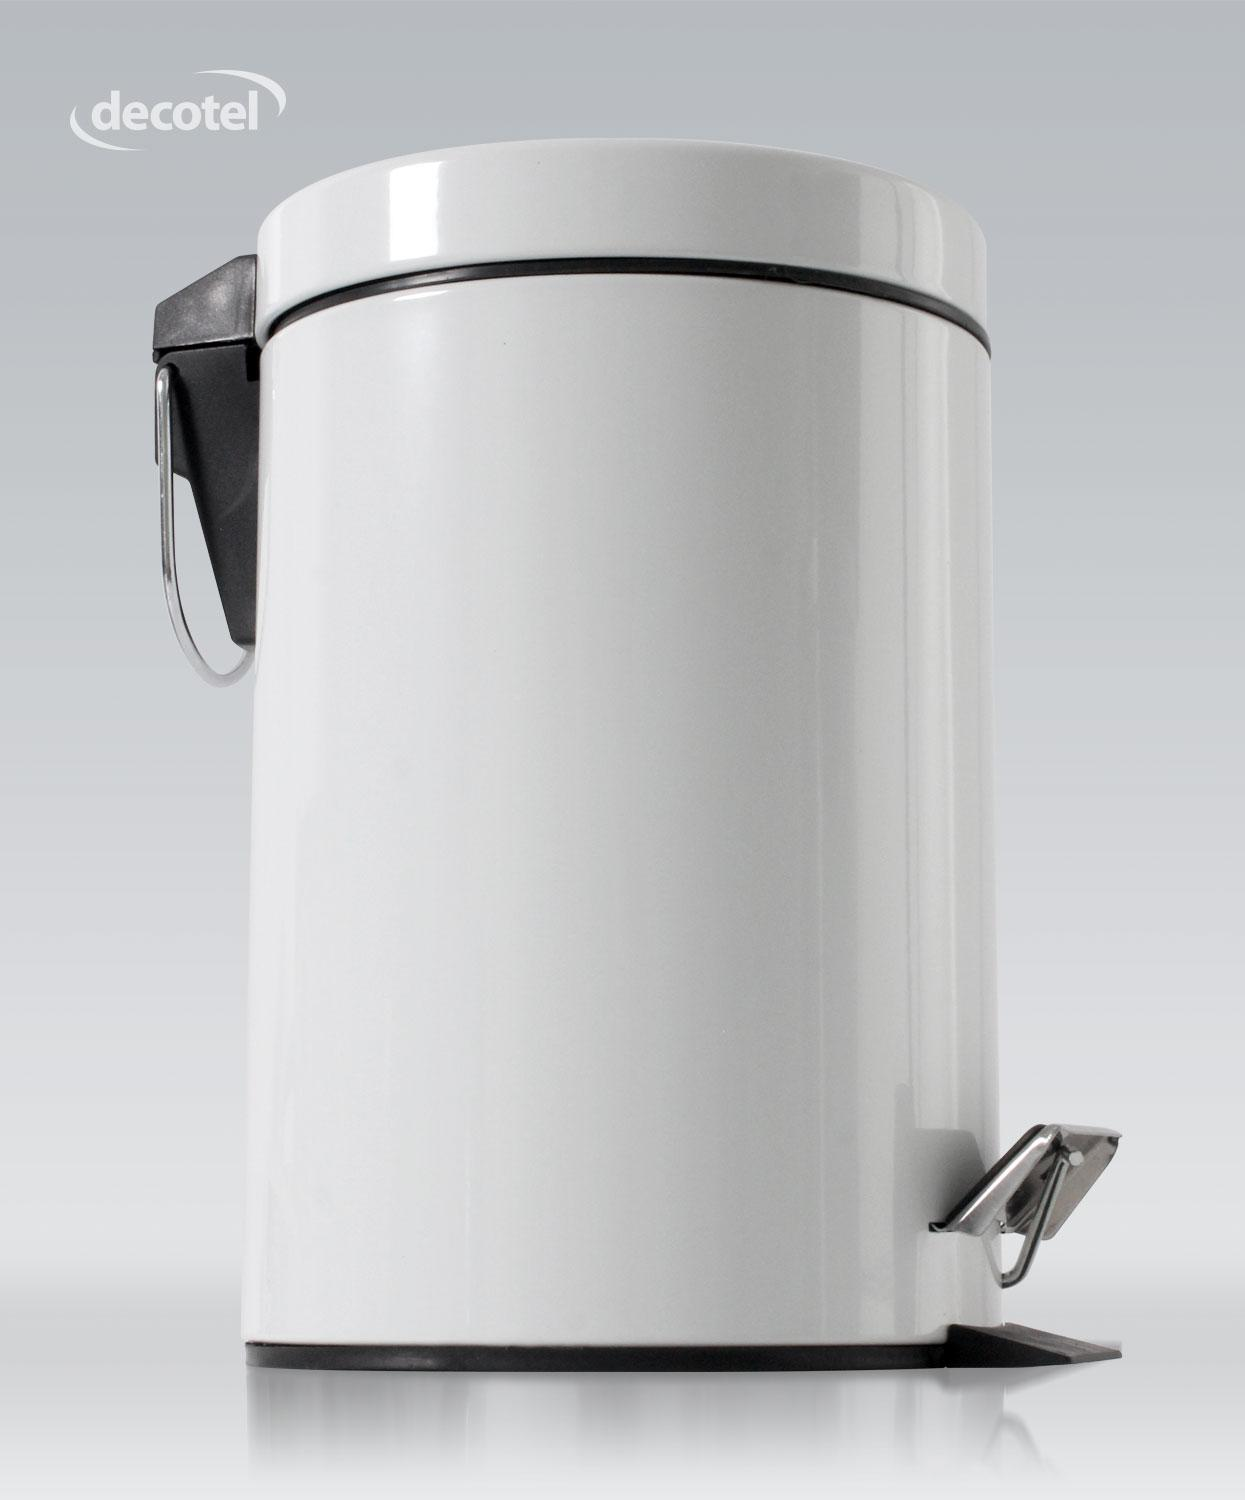 Gloss white 3 litre bathroom pedal bin